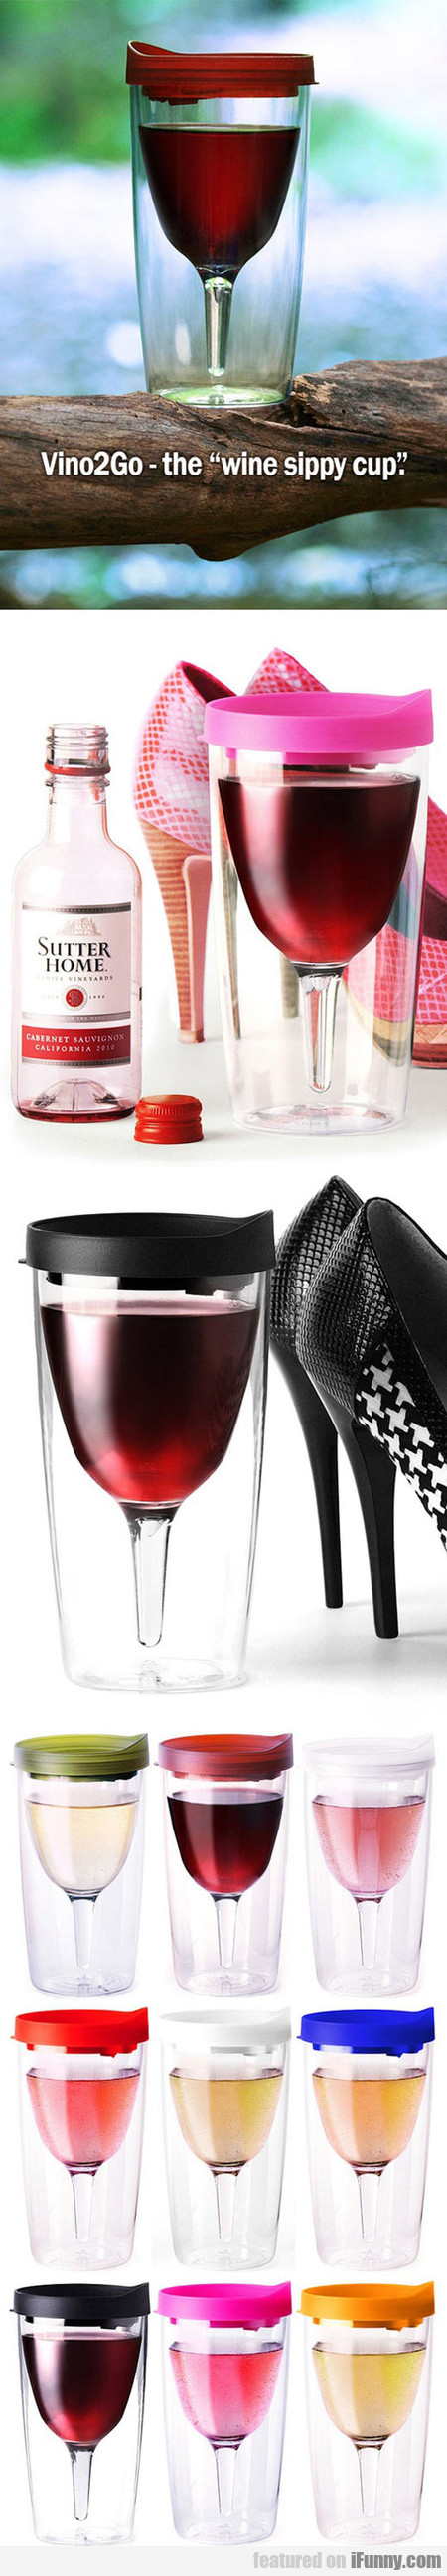 Vino2go - The Wine Sippy Cup